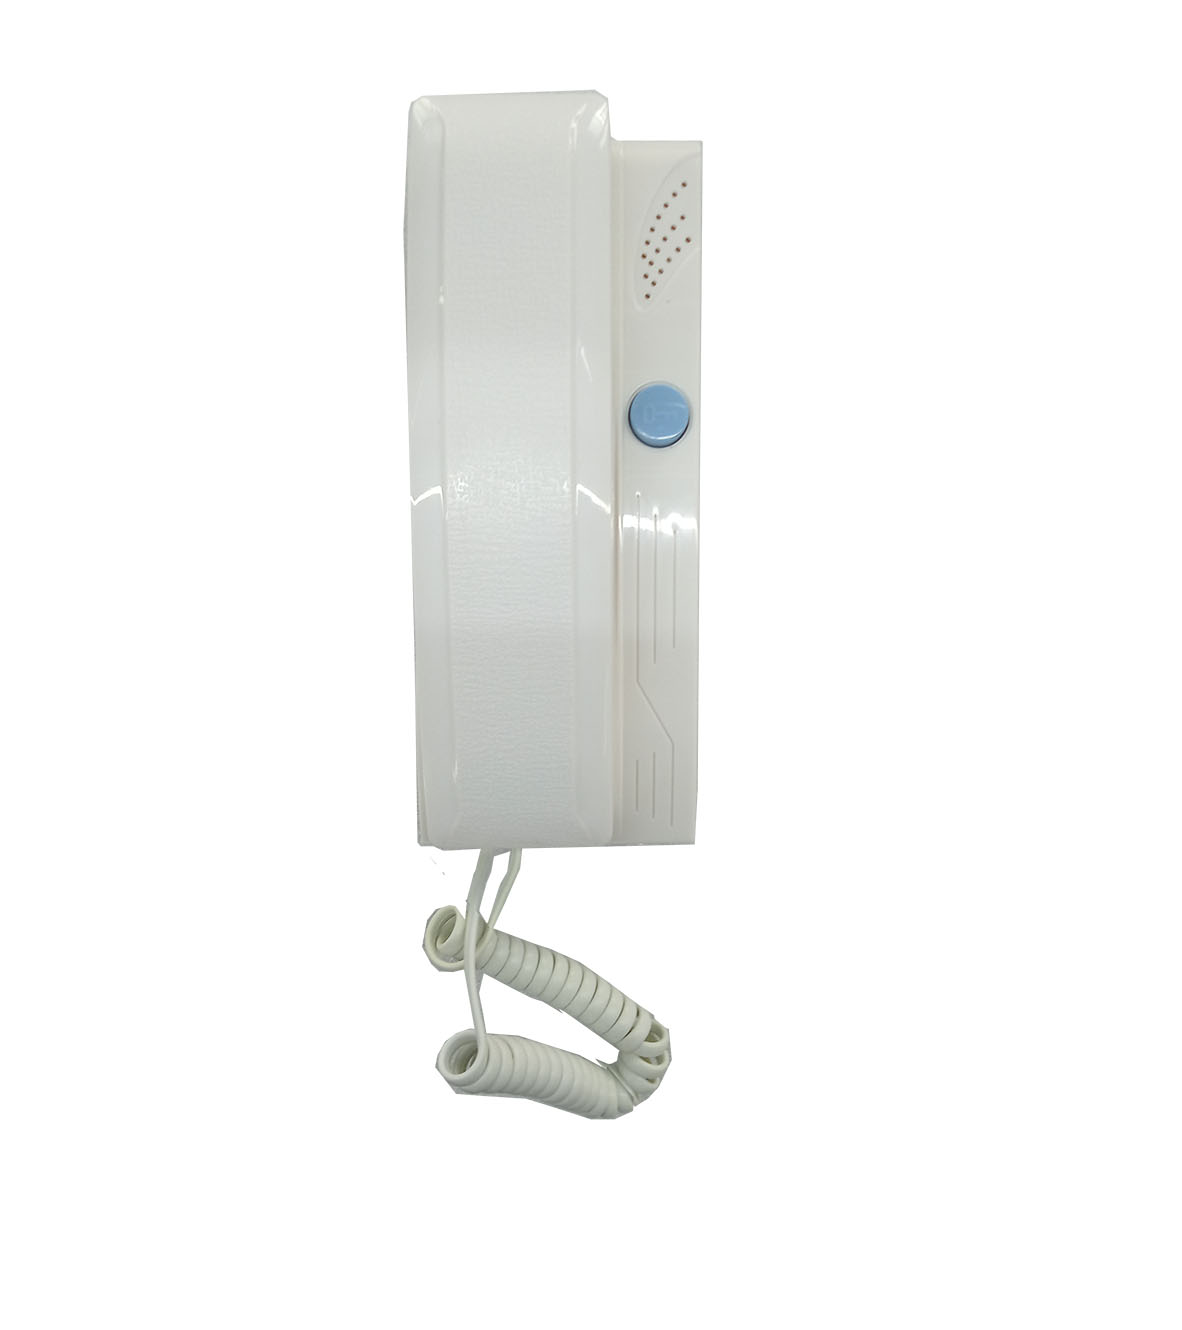 2-wire Audio phone for apartment